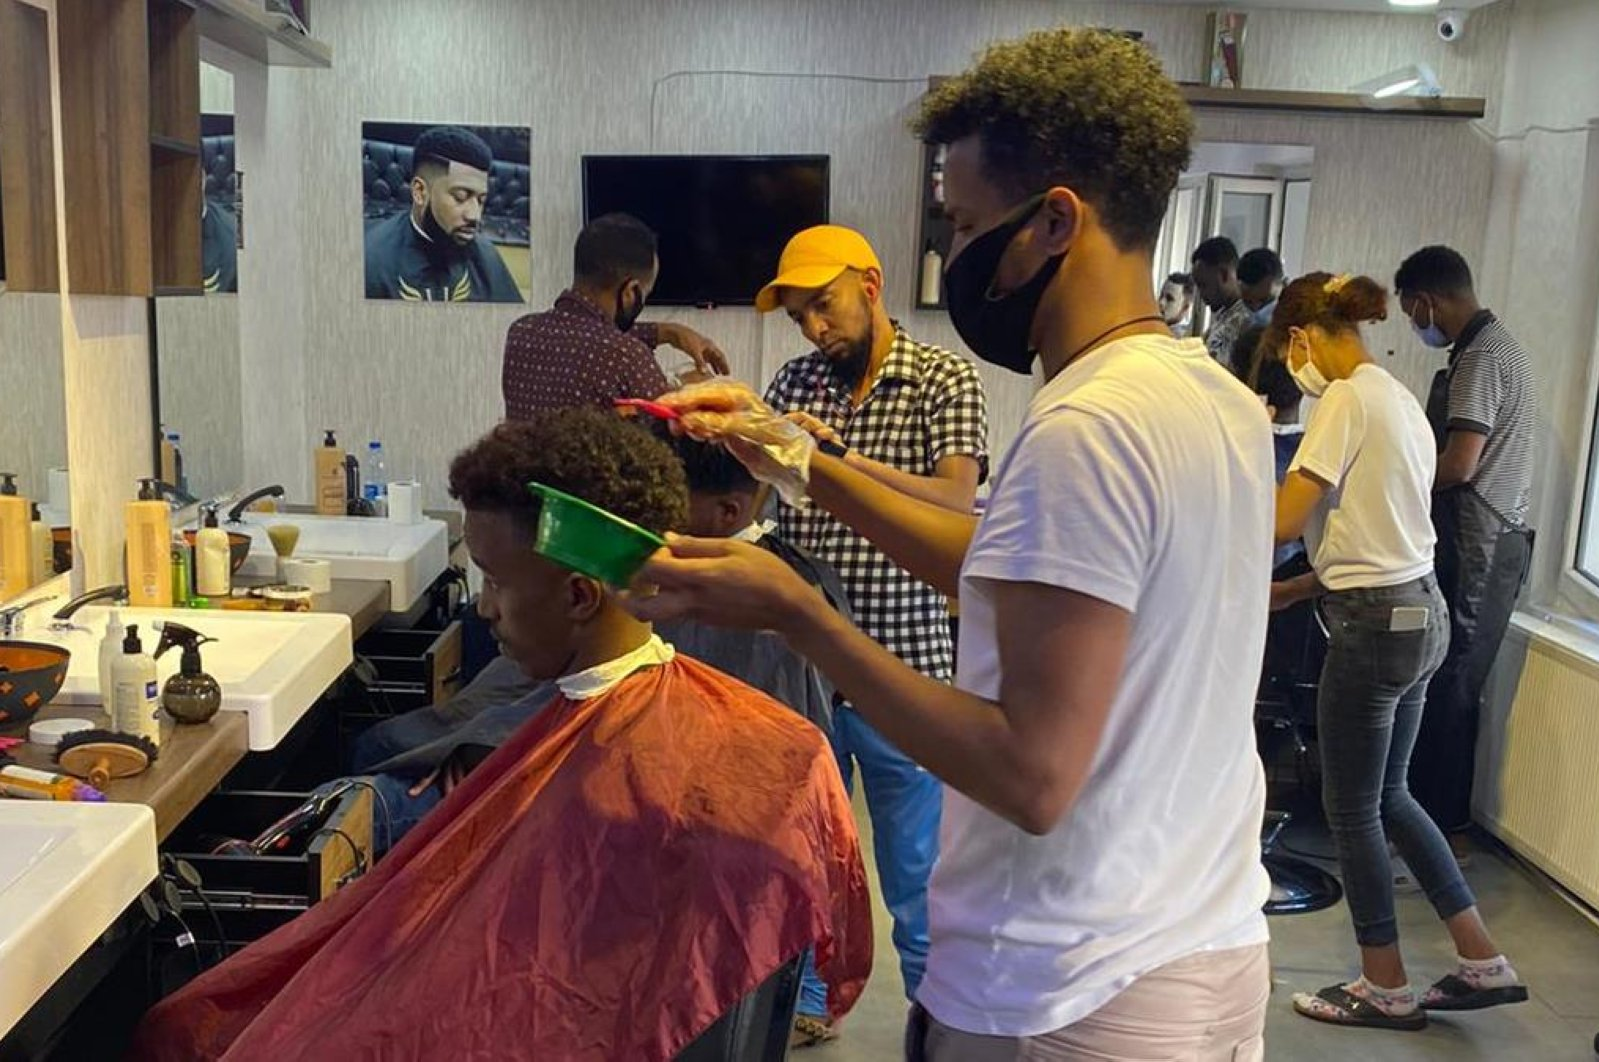 Jama brought in experienced barbers from several African countries to work at his shop in Ankara, Turkey. (AA Photo)